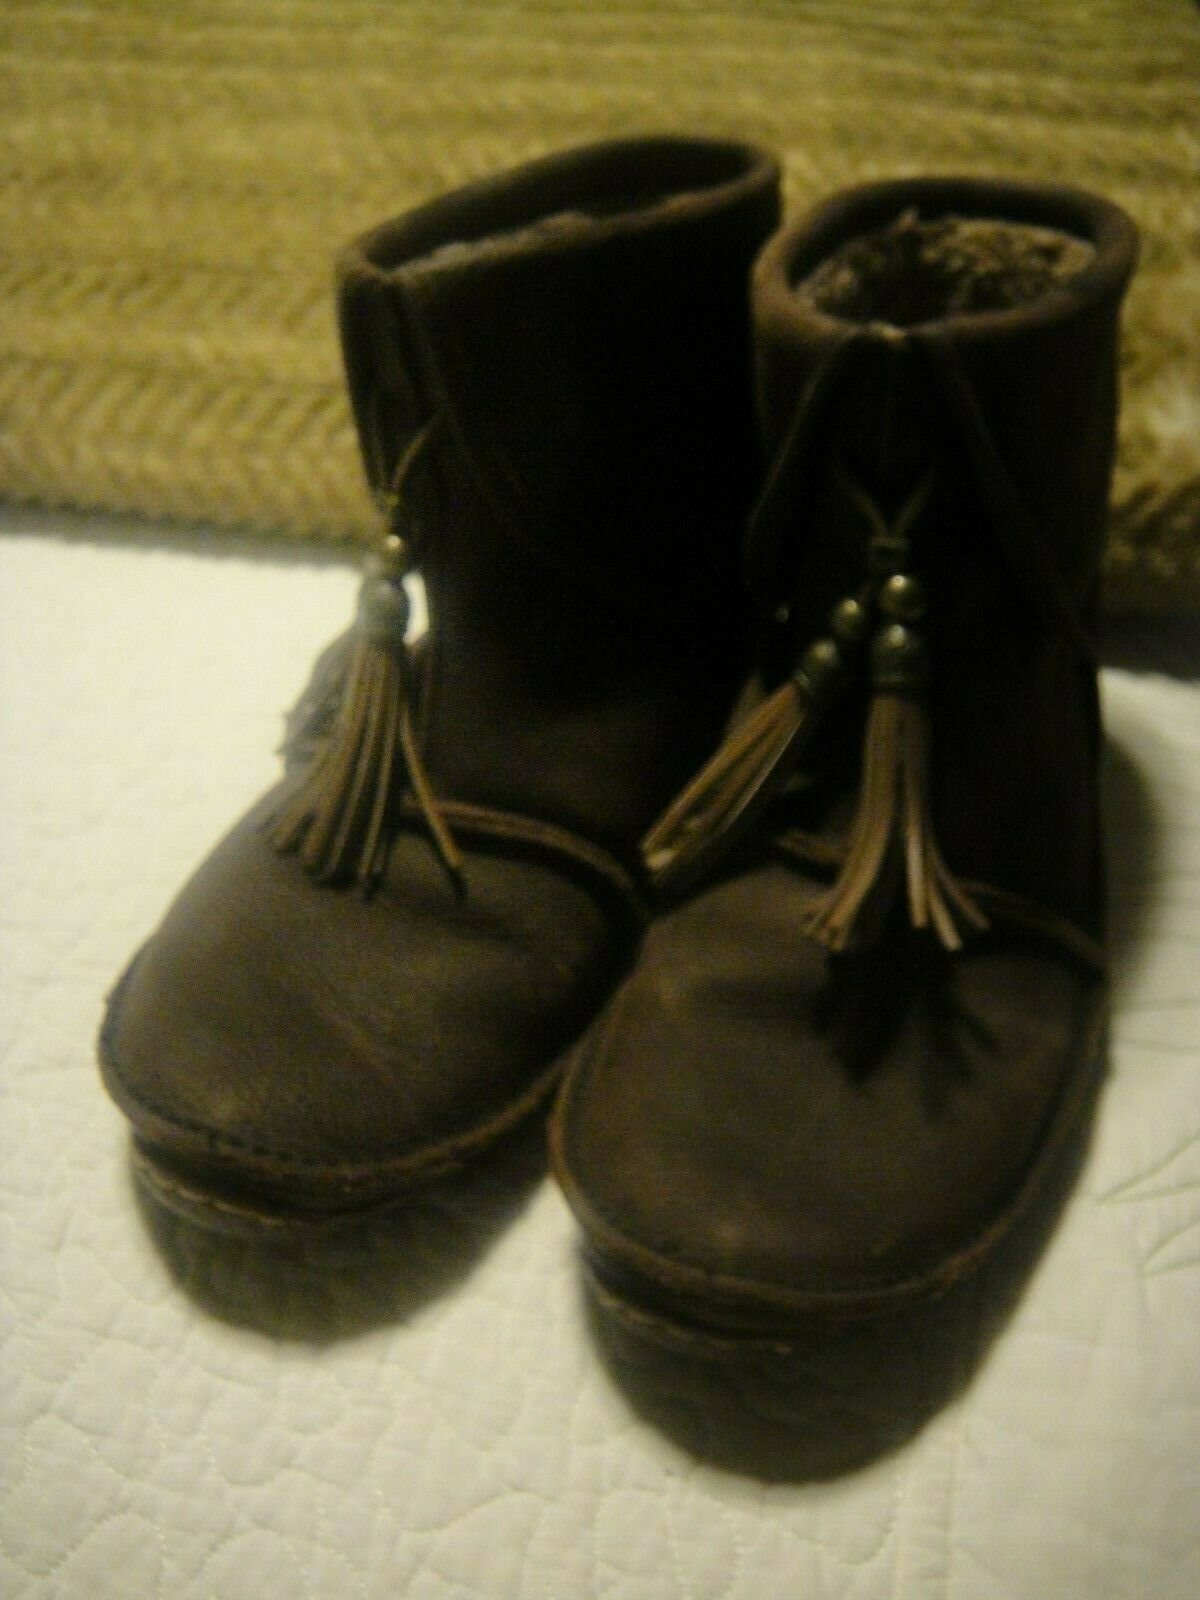 DURANGO CITY SANTA FE BOOTS BROWN LEATHER MOCASSINS W TASSLE WARM LINER 8